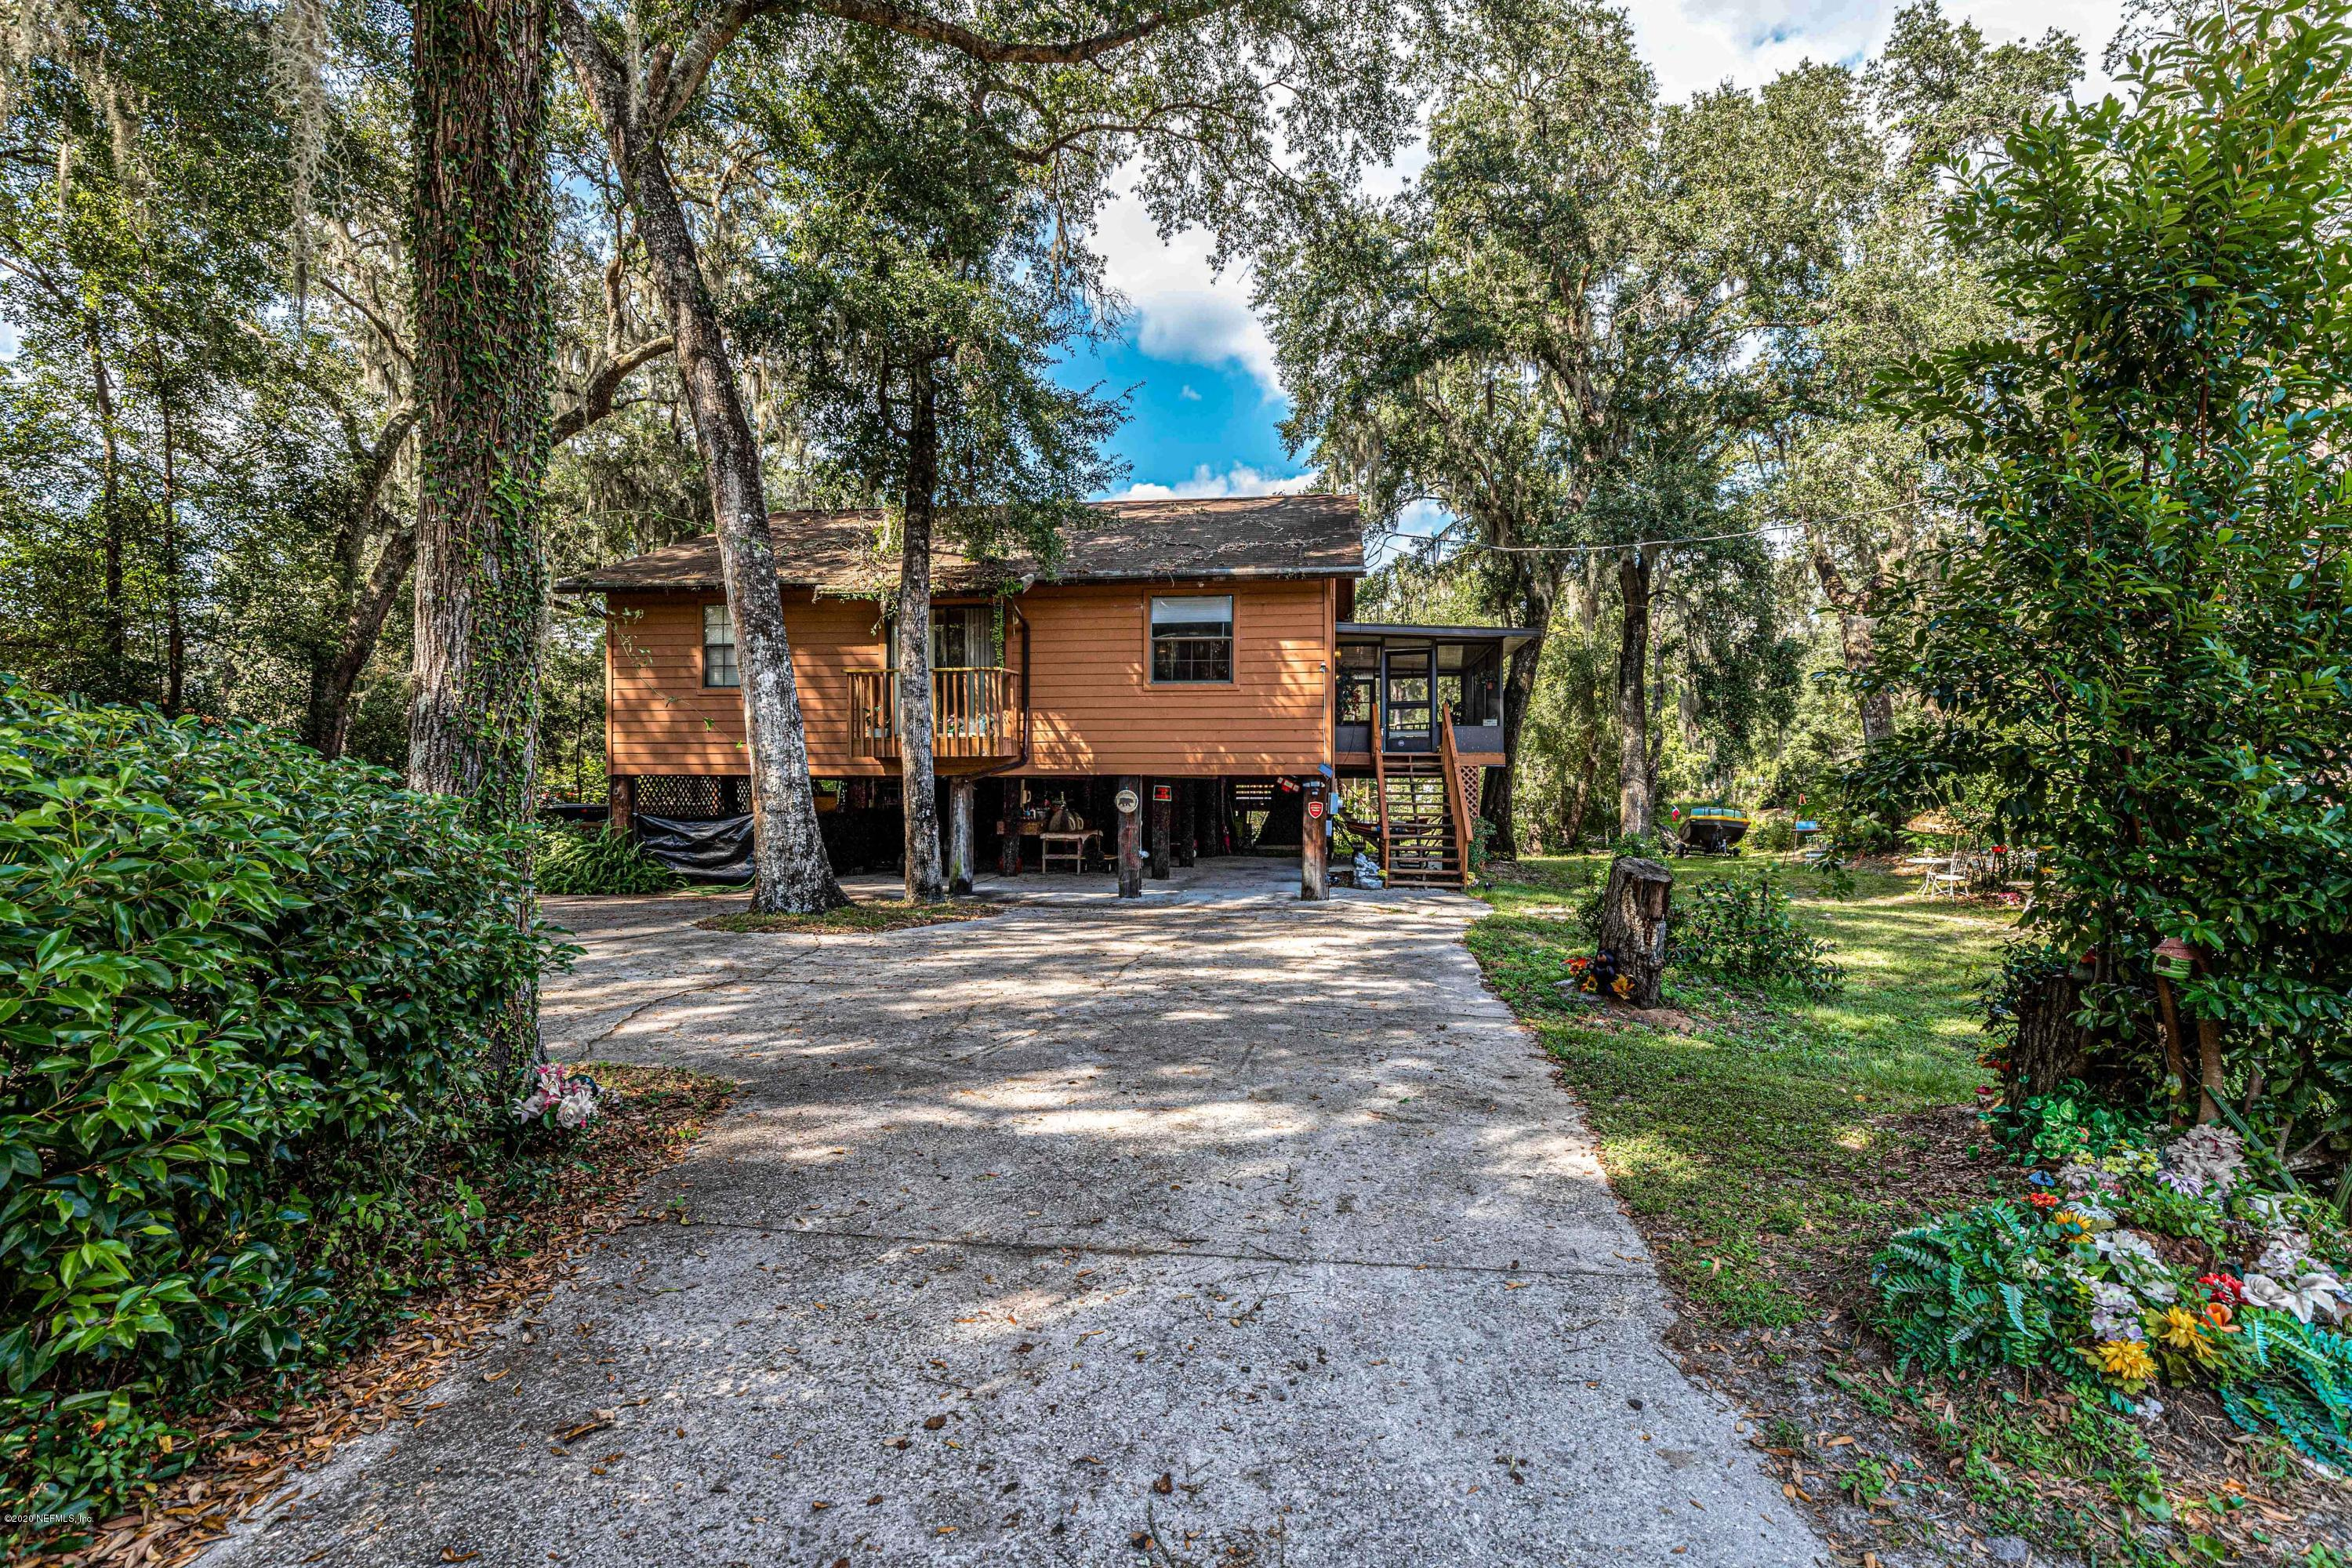 4196 SCENIC, MIDDLEBURG, FLORIDA 32068, 3 Bedrooms Bedrooms, ,2 BathroomsBathrooms,Residential,For sale,SCENIC,1078183